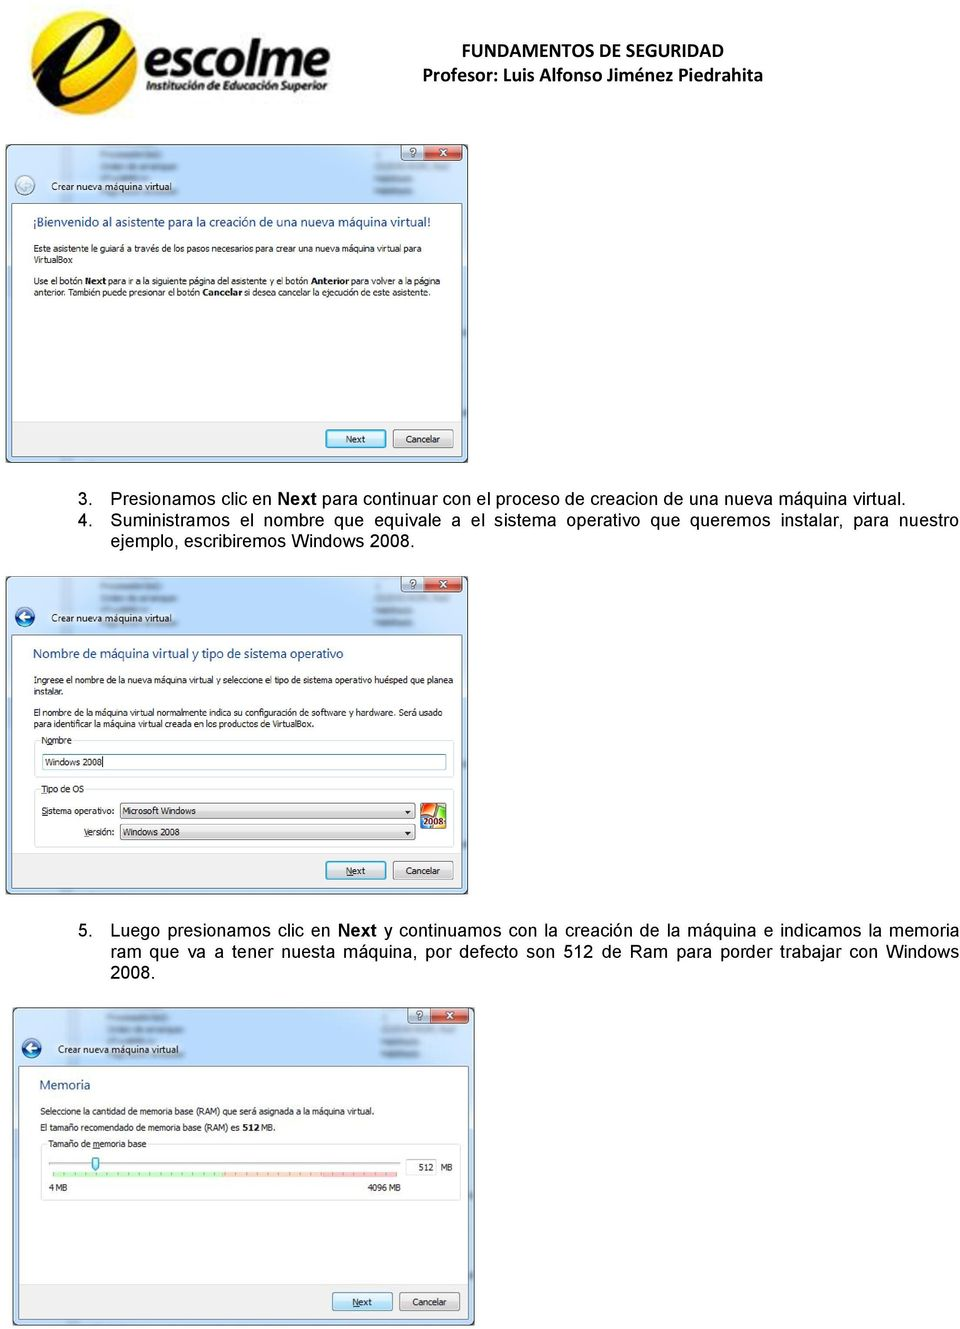 escribiremos Windows 2008. 5.